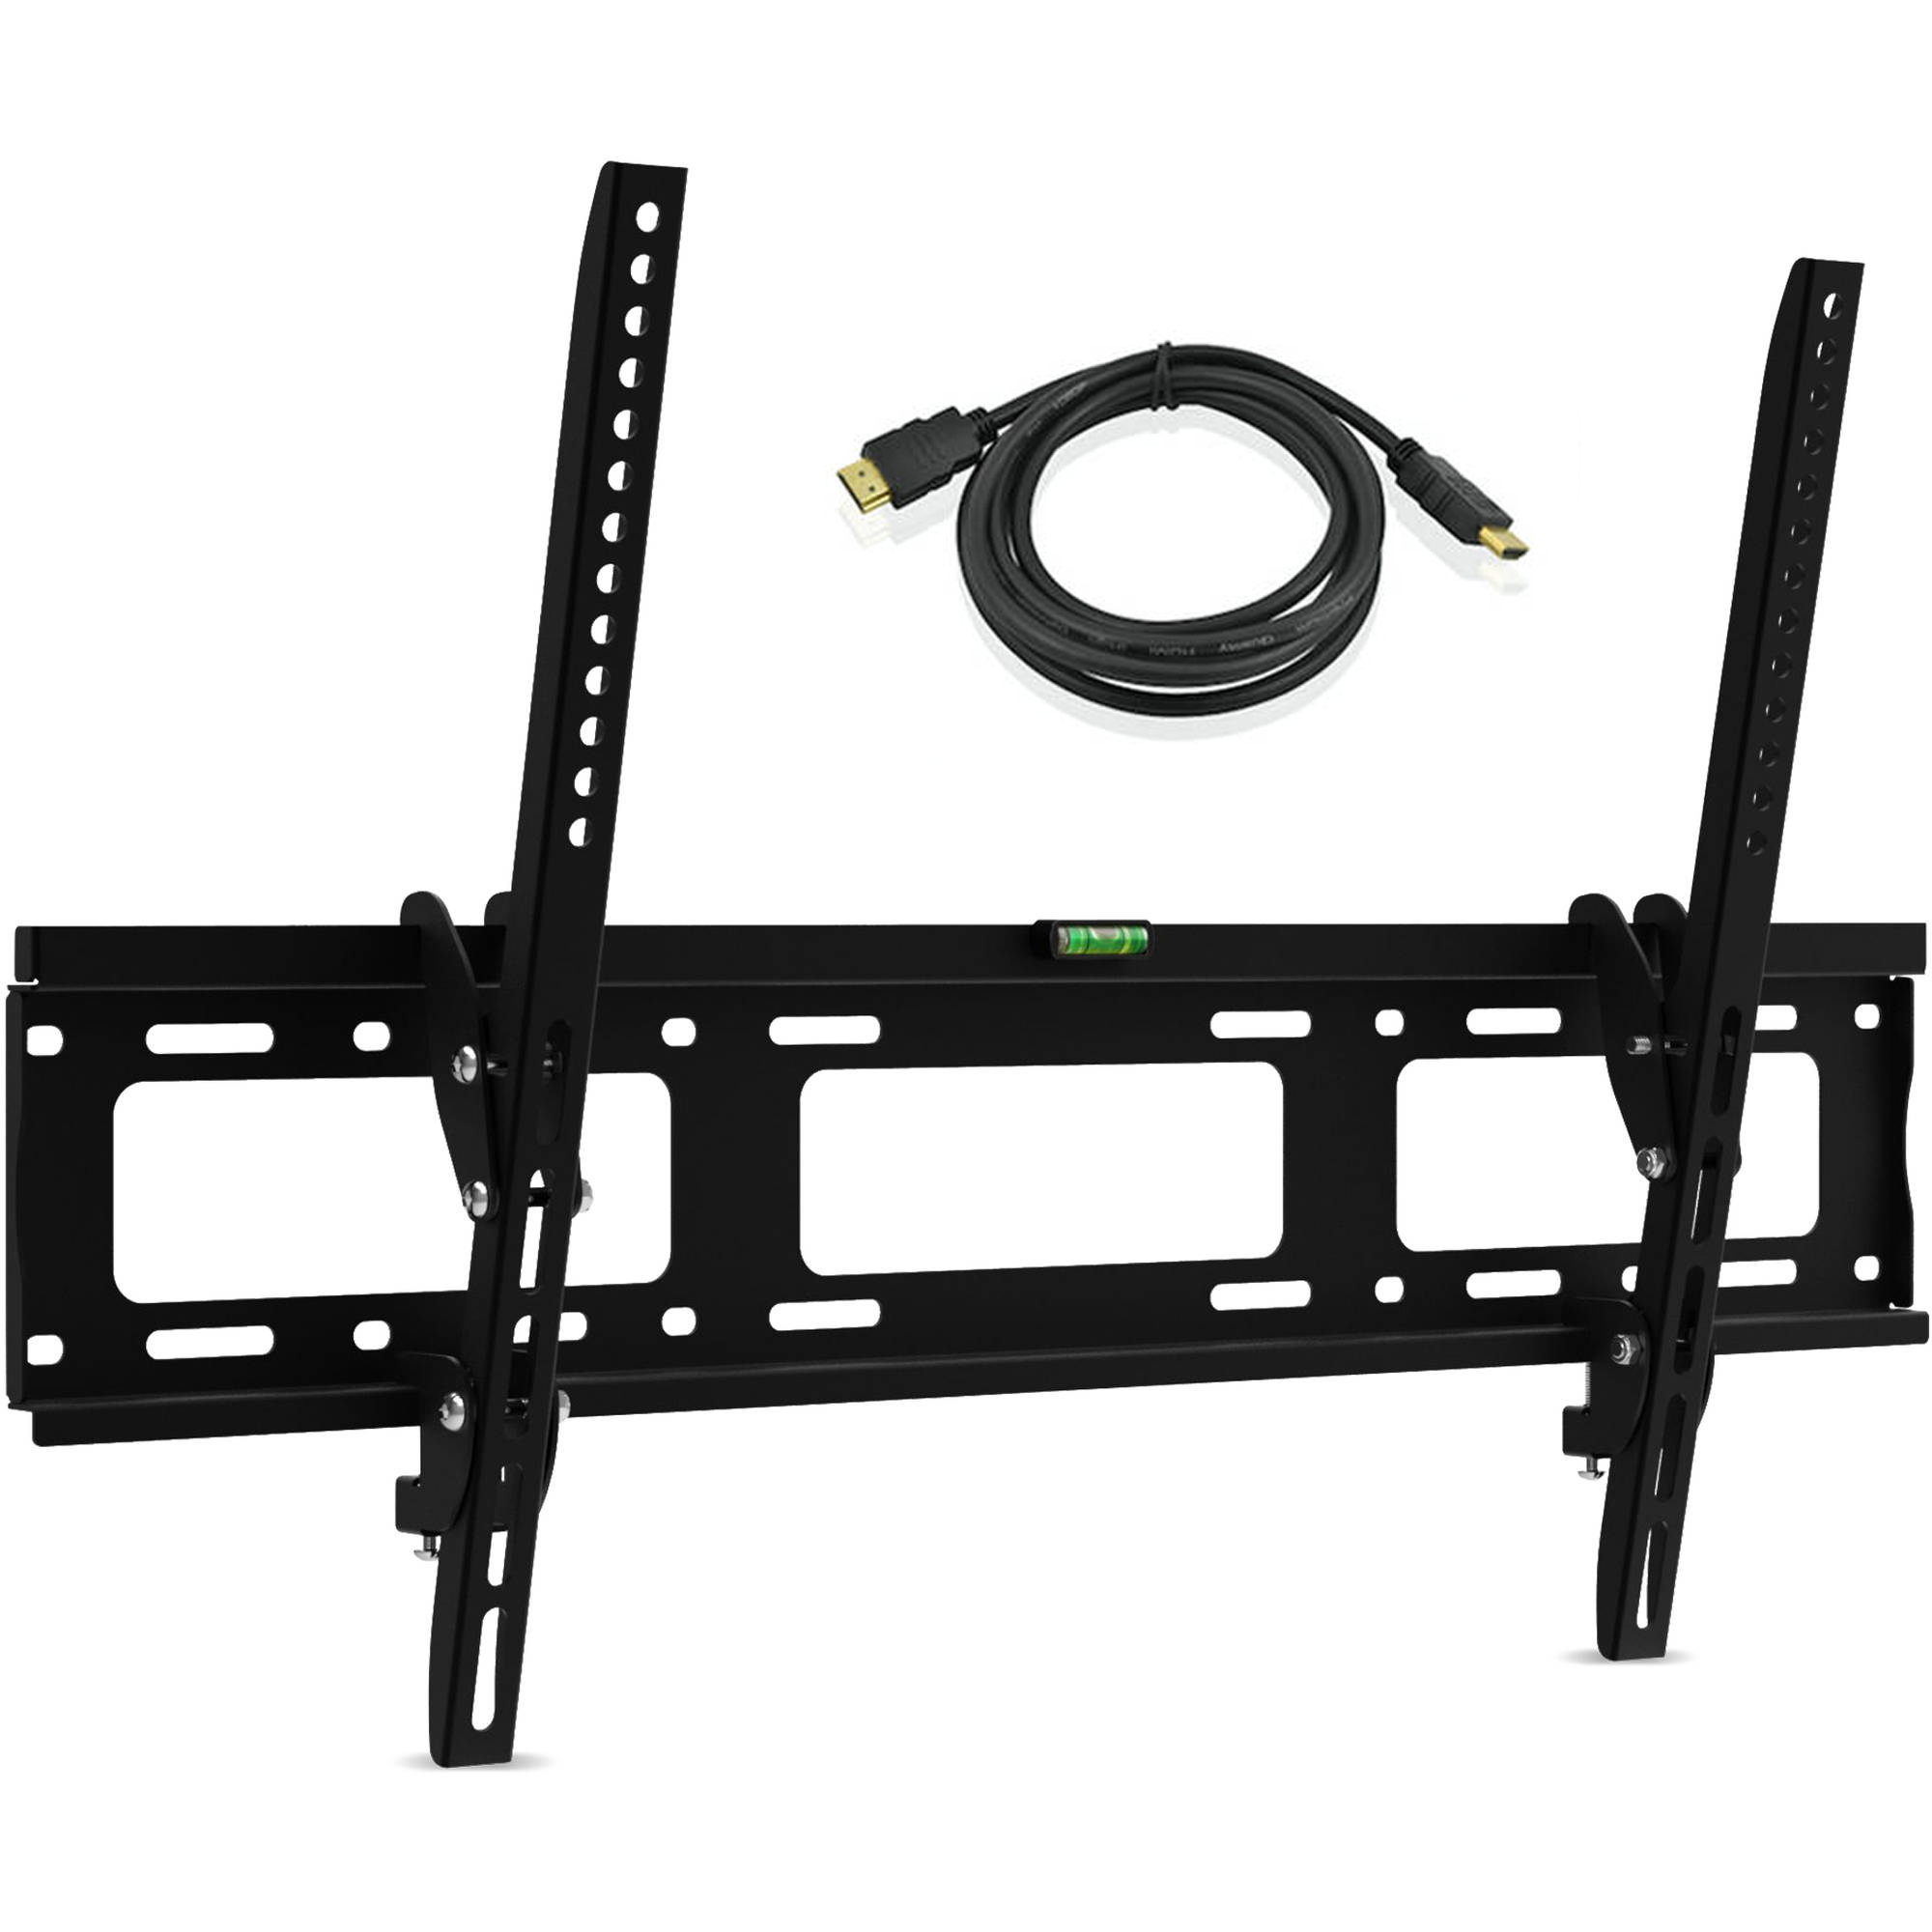 "Ematic 30""-79"" Tilt/Swivel Universal TV Wall Mount with HDMI Cable"